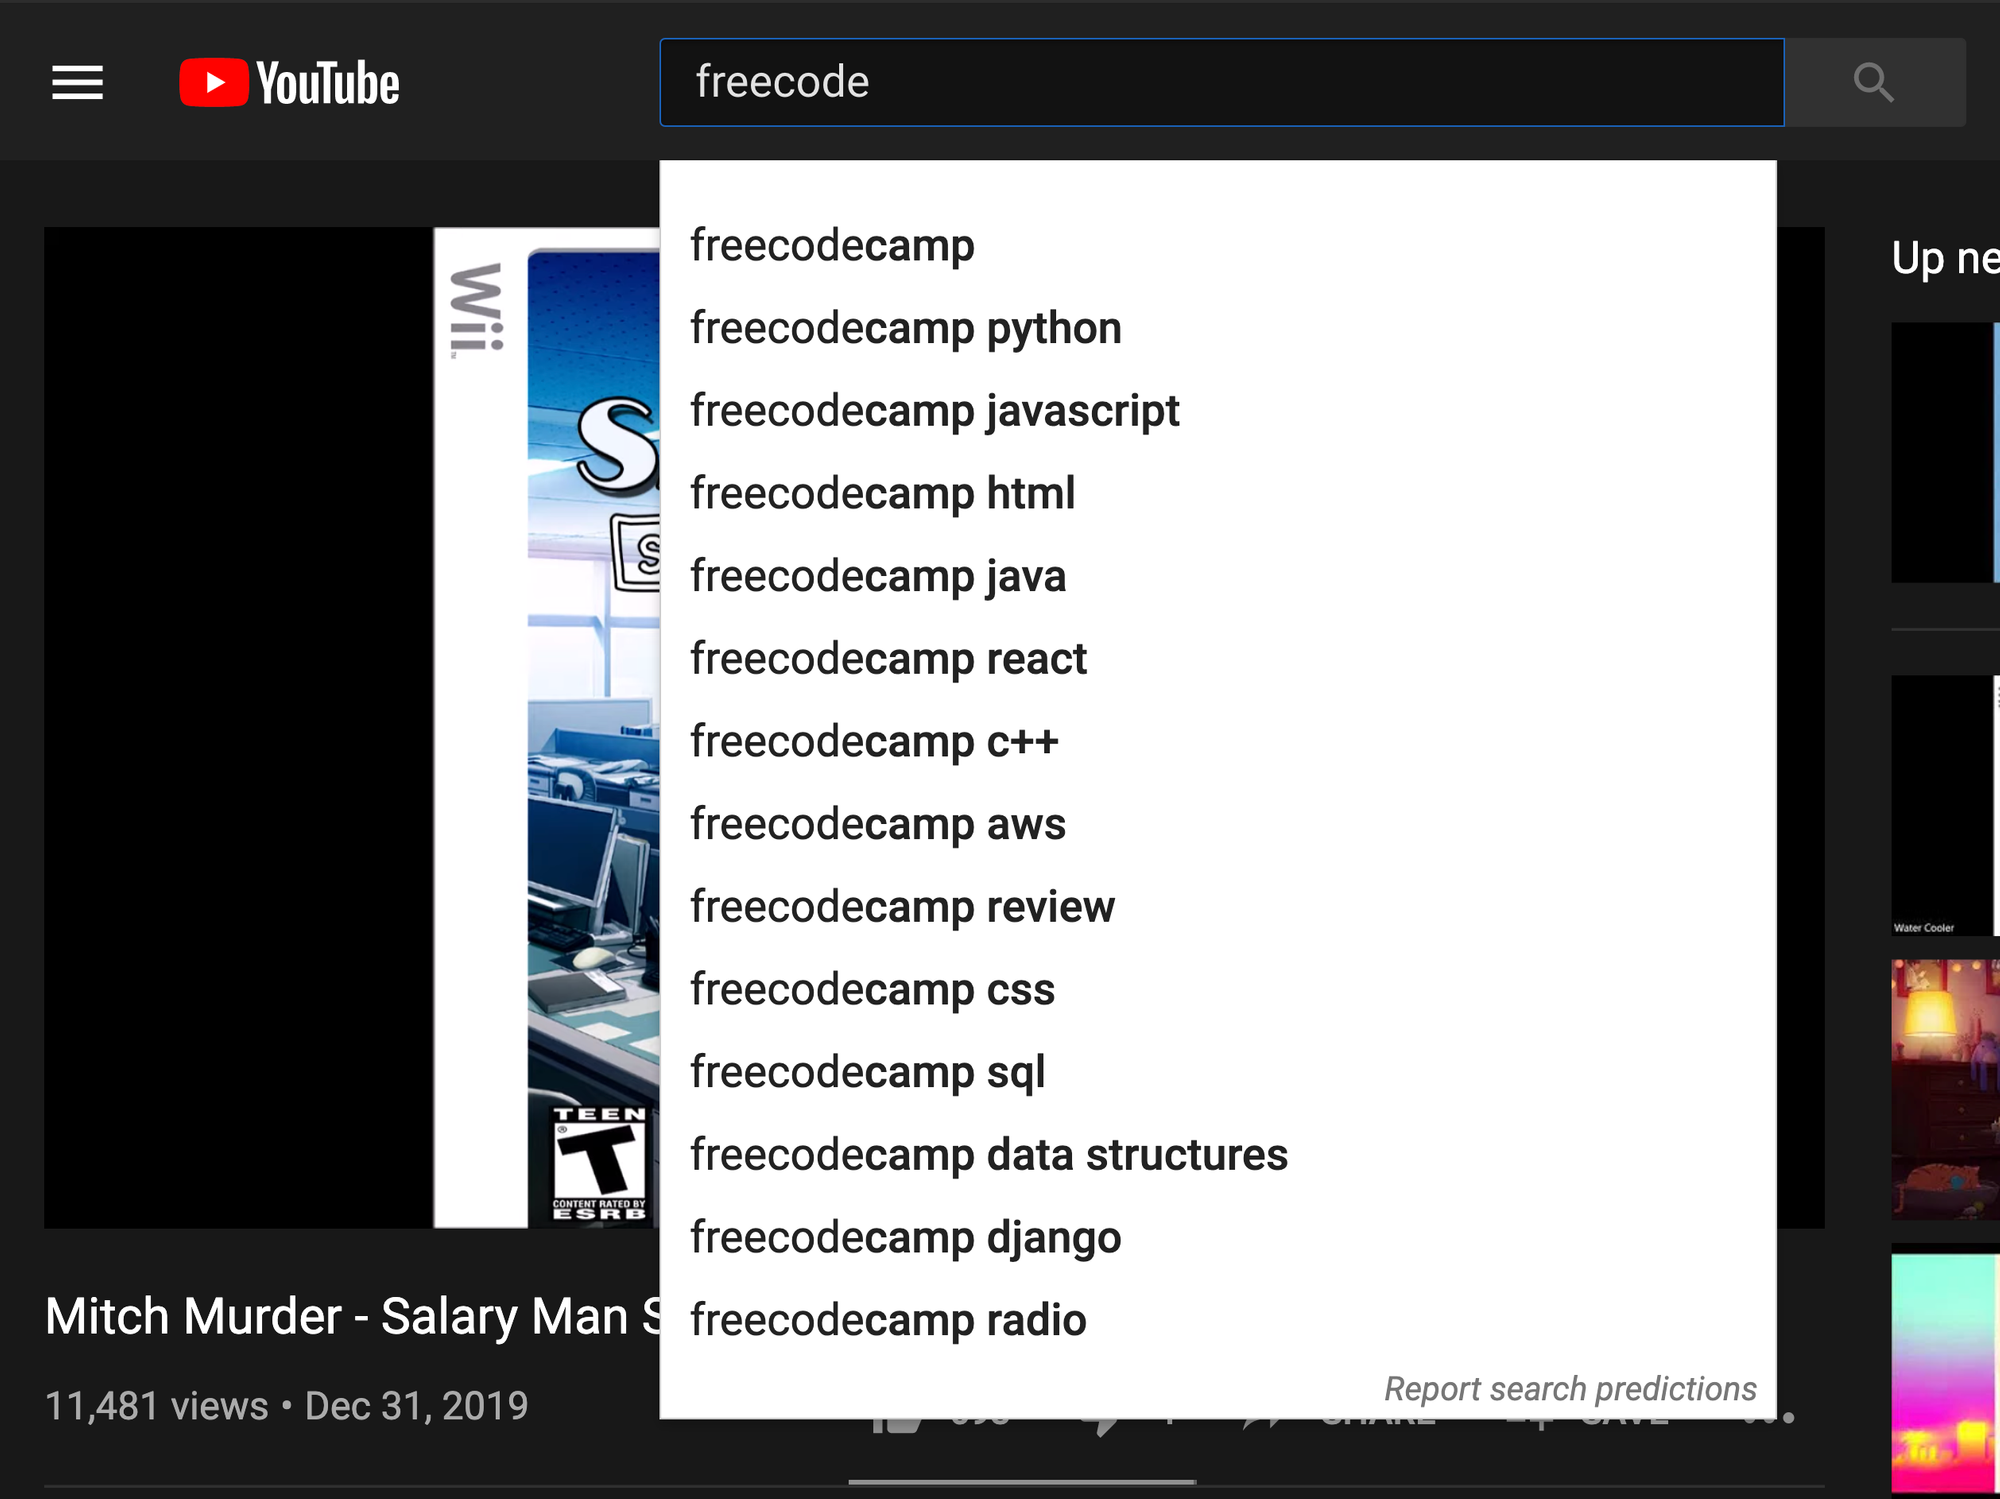 YouTube's search box, which you can access at any time with the / key.